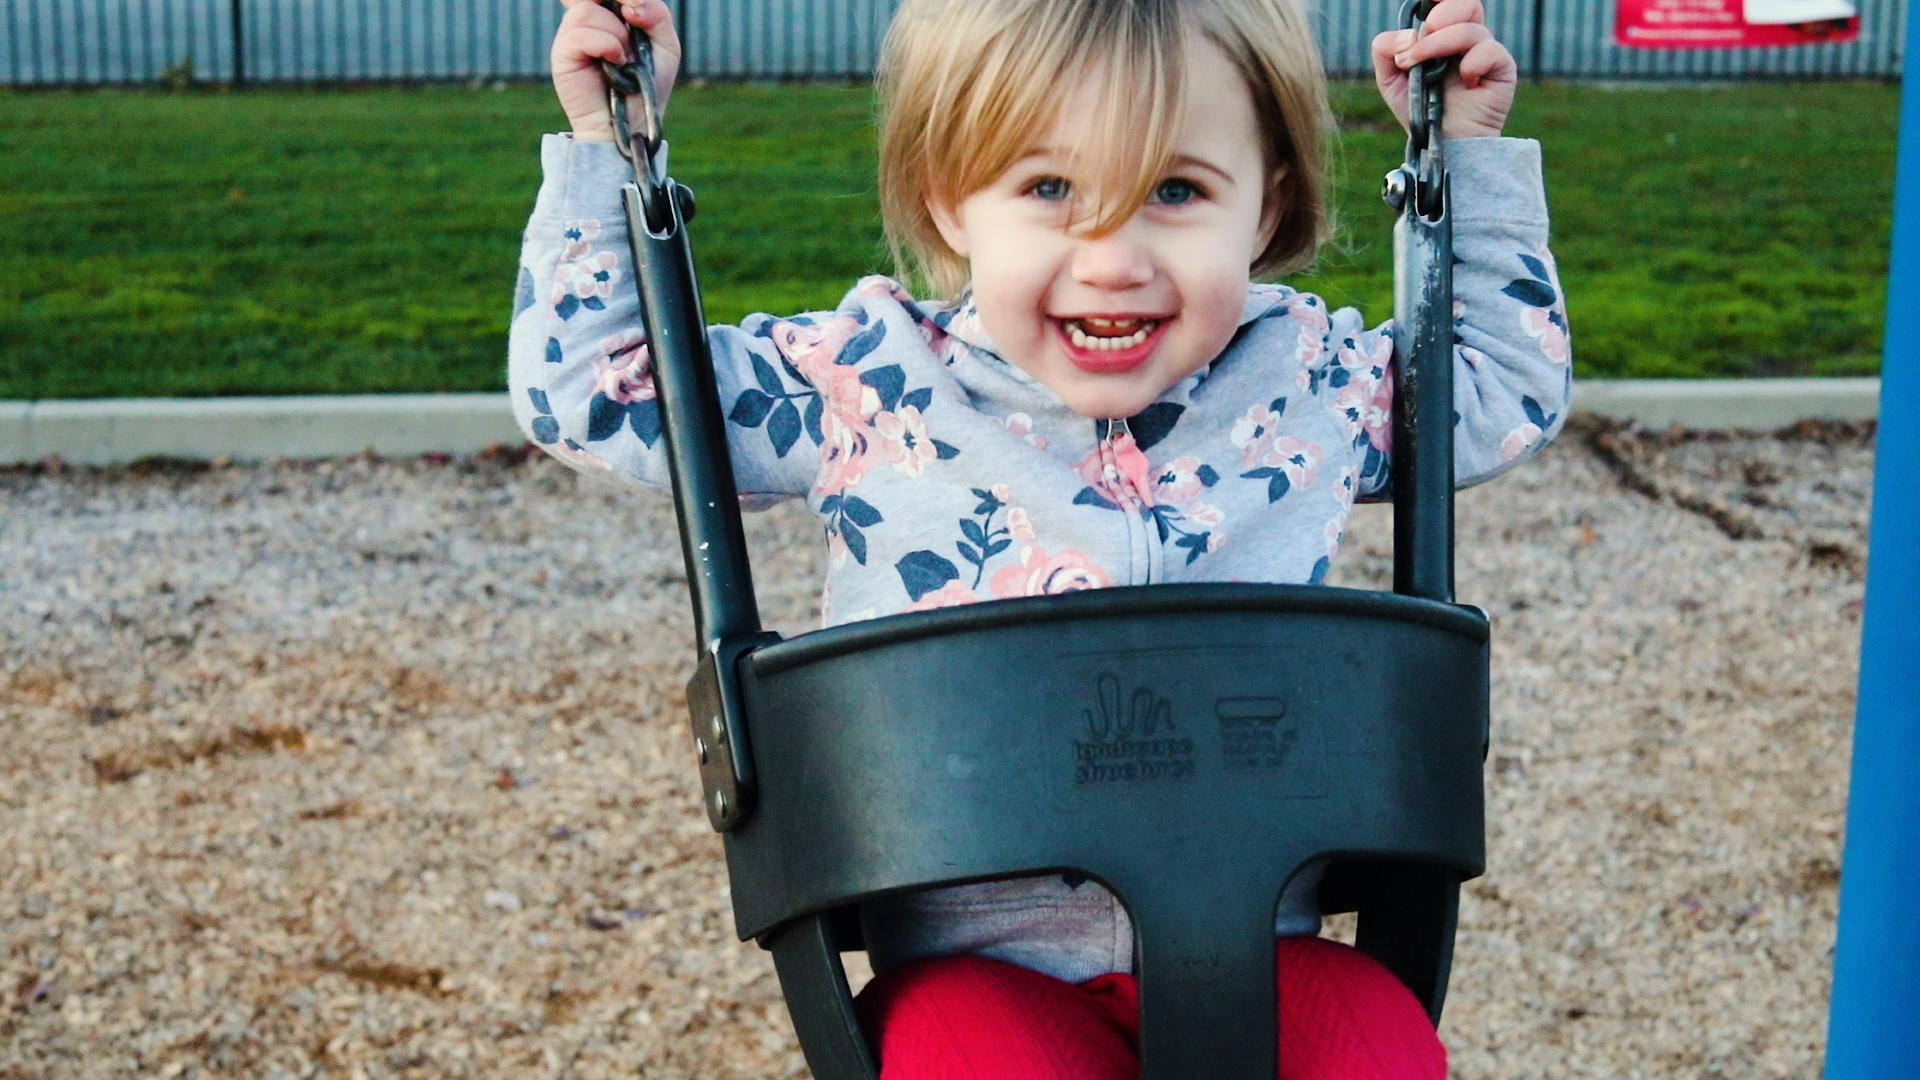 Young Girl smiling while swinging on a swing in the park